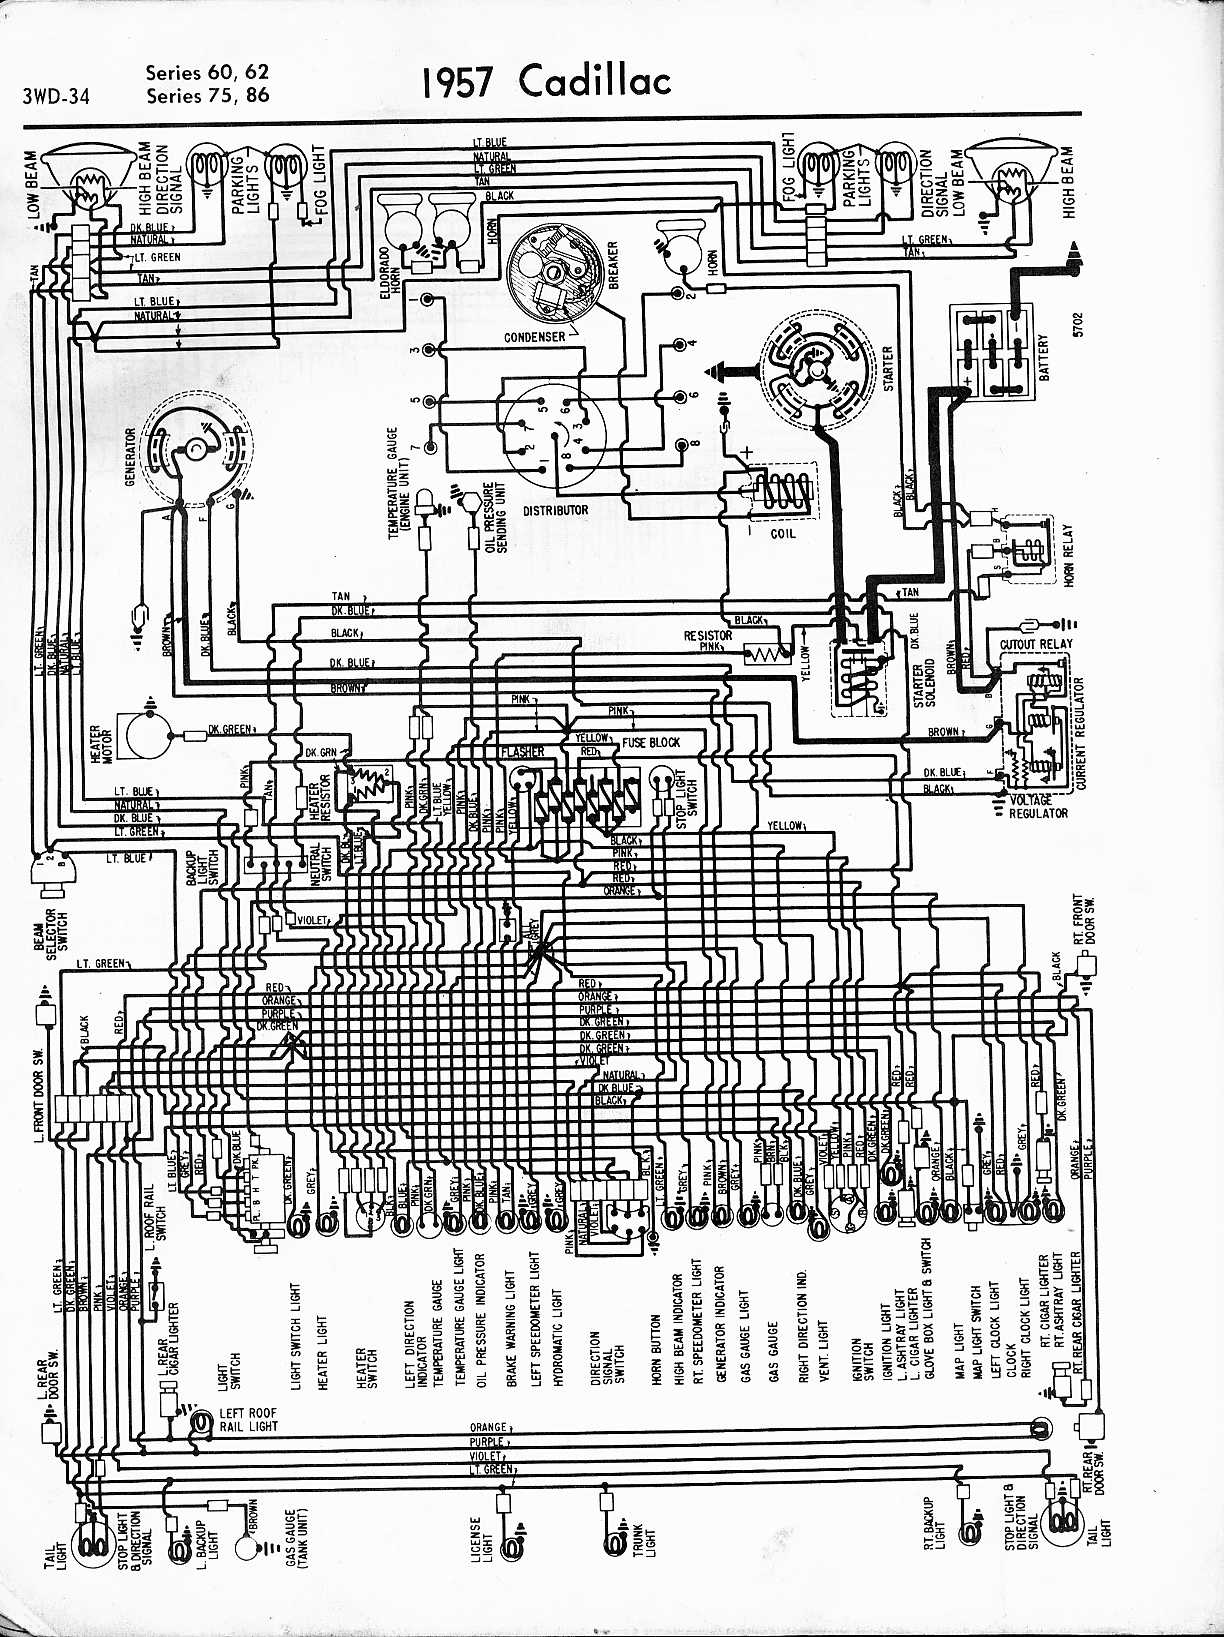 57 Cadillac Engine Diagram Just Another Wiring Blog Northstar Diagrams 1957 1965 Rh Oldcarmanualproject Com 500 Cubic Inch